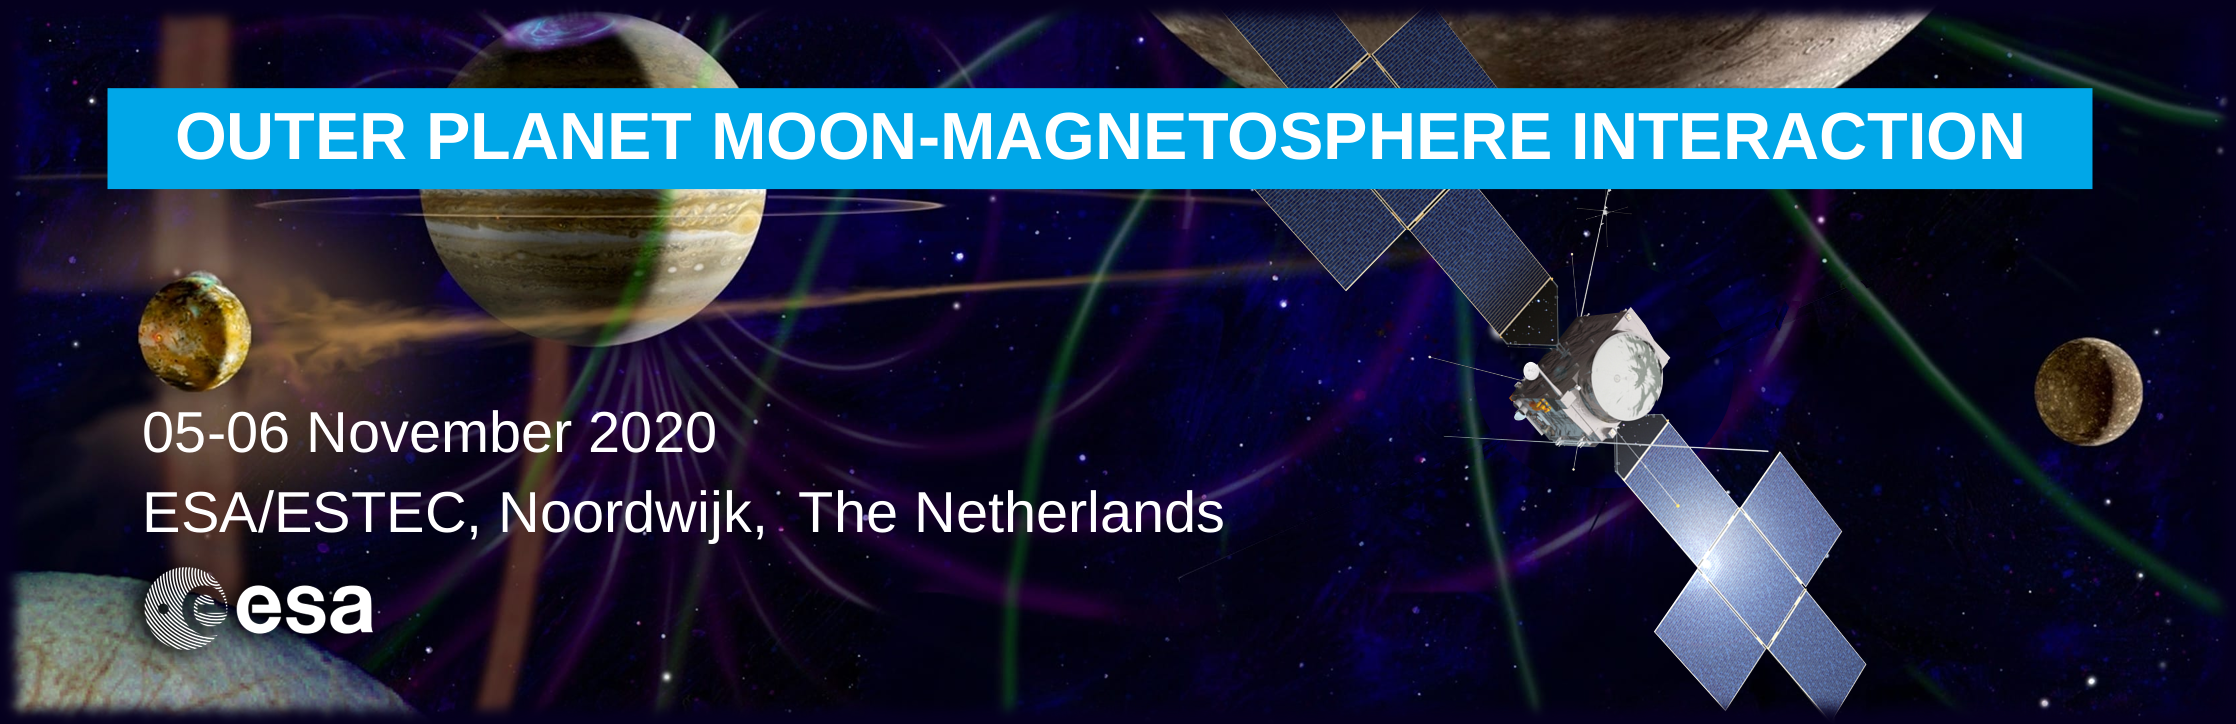 Outer planet moon - magnetosphere interaction workshop